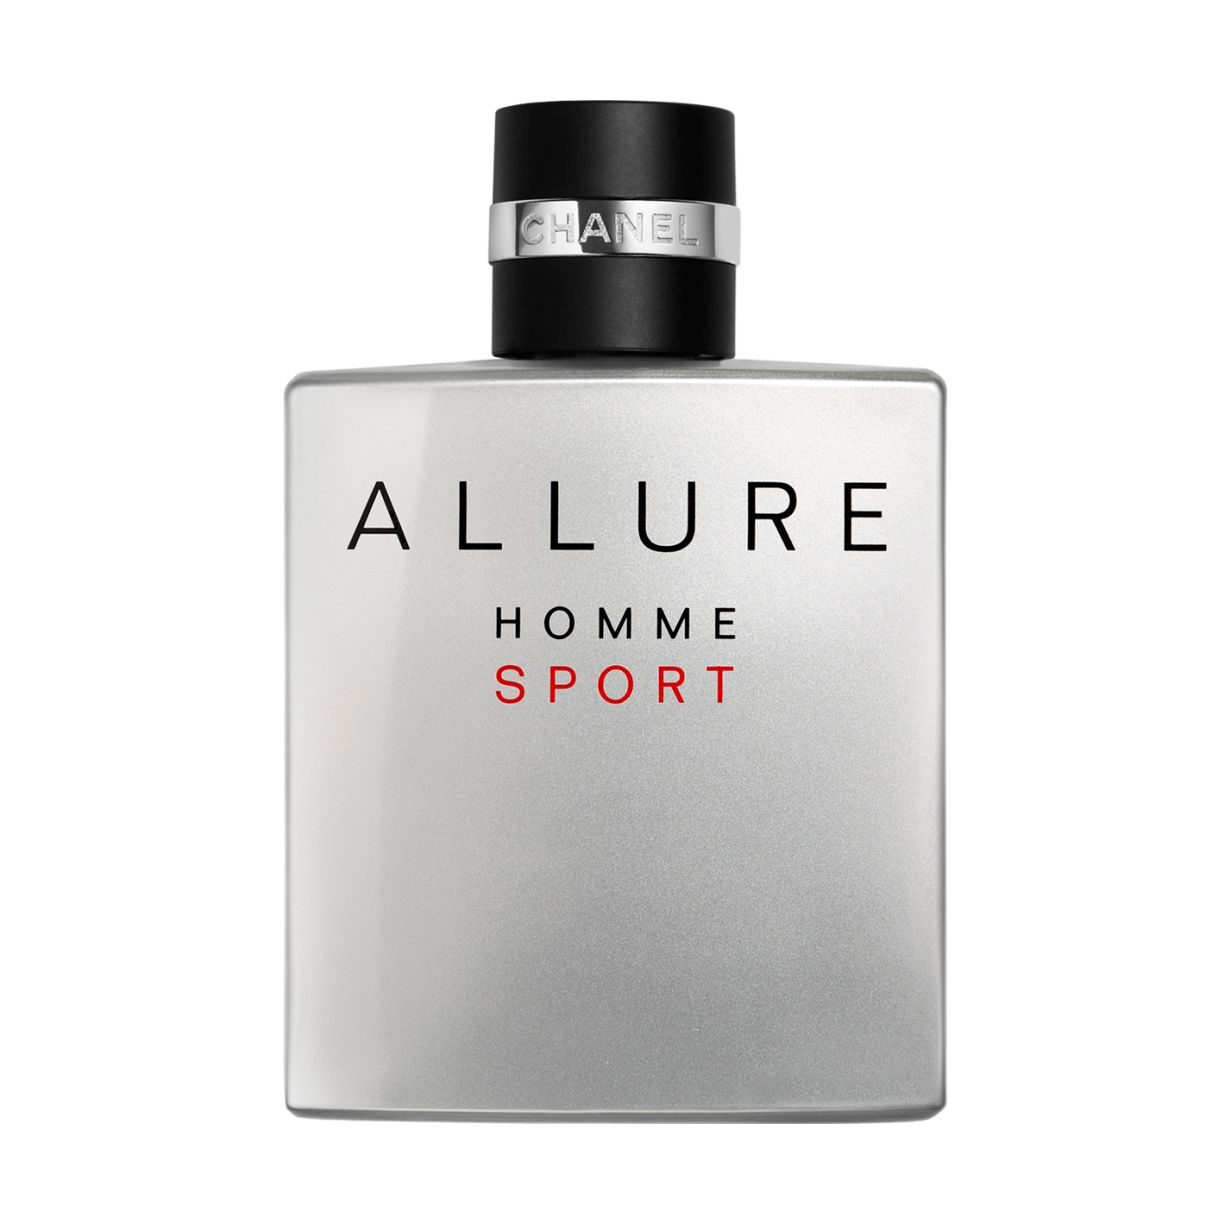 allure homme sport after shave lotion parfums chanel. Black Bedroom Furniture Sets. Home Design Ideas